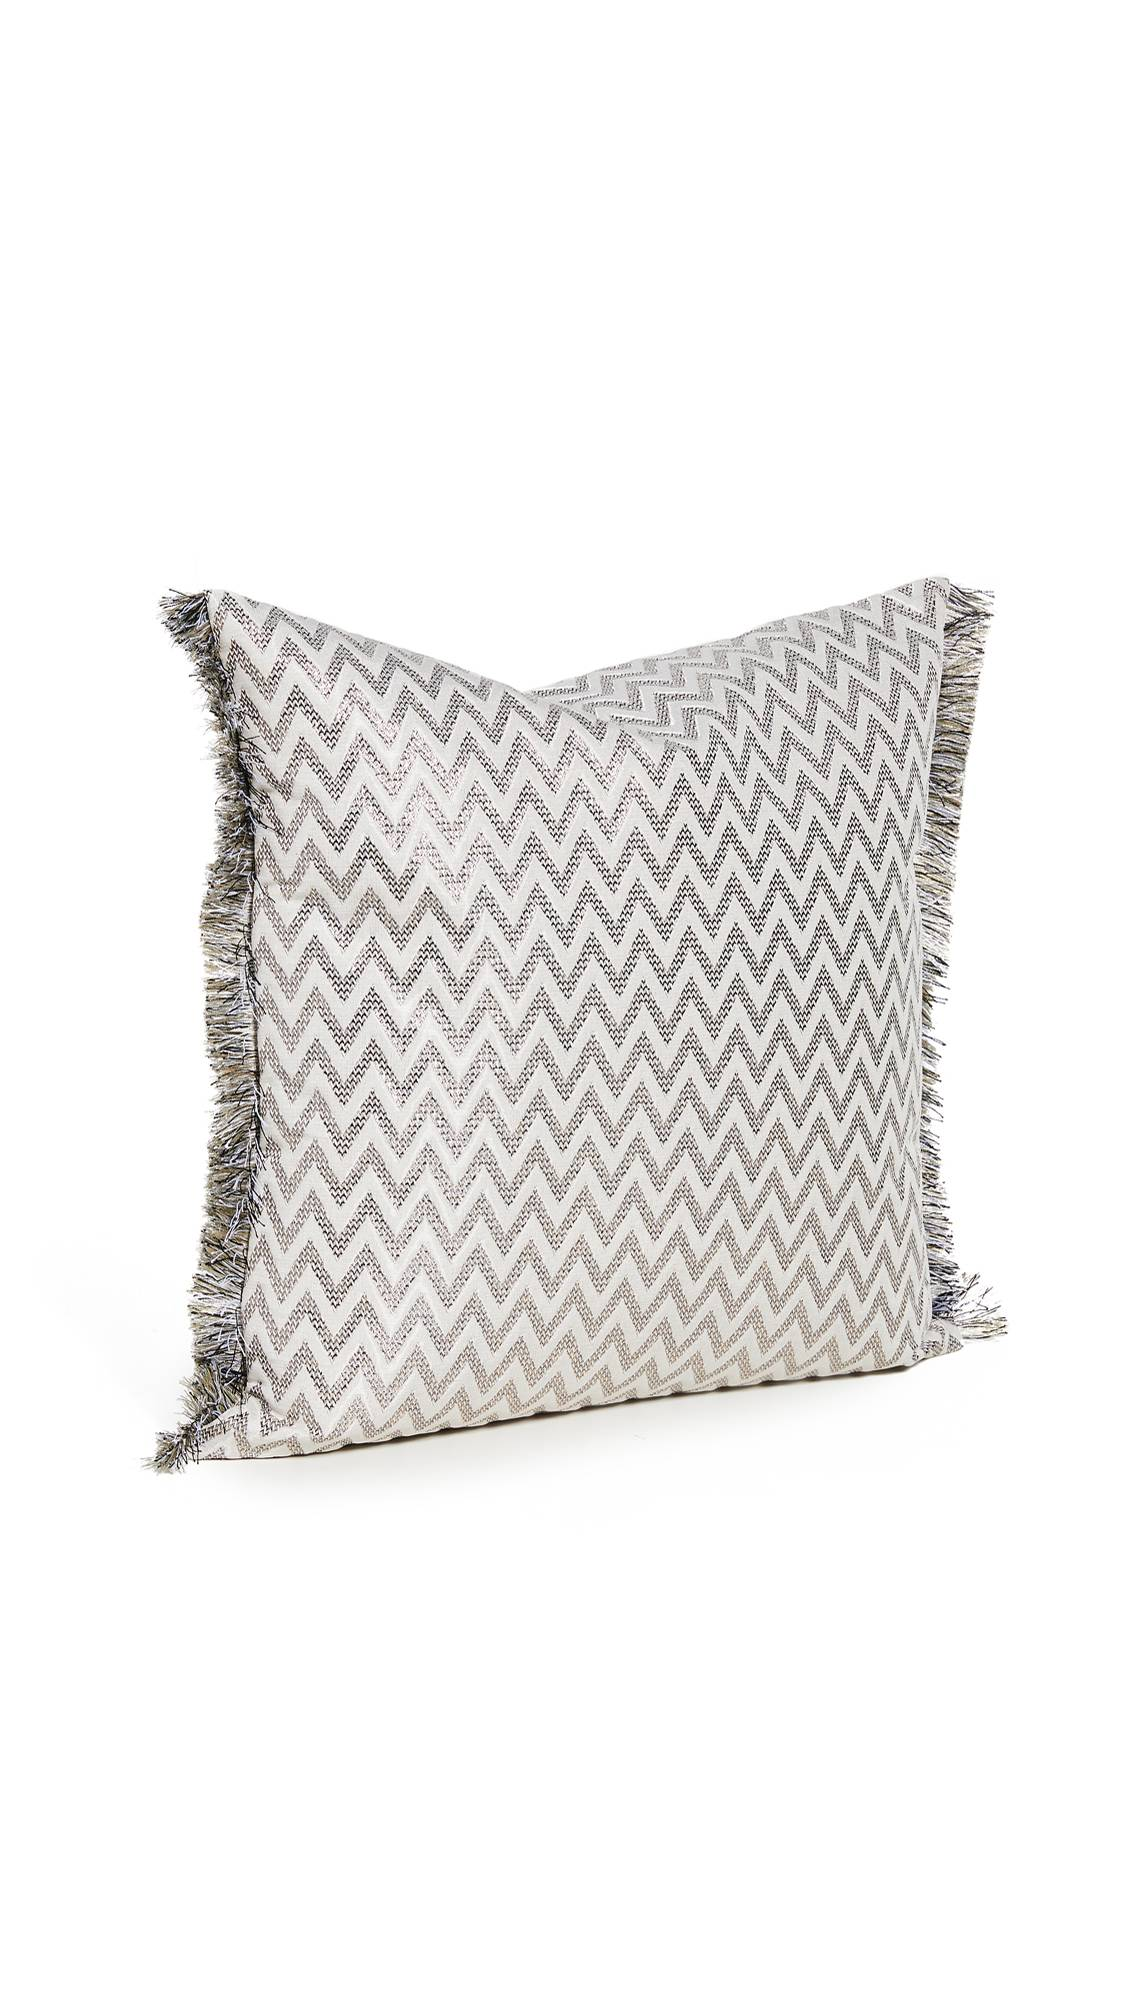 Missoni Home Stanford Cushion- 16x16  - White/Silver - Size: One Size